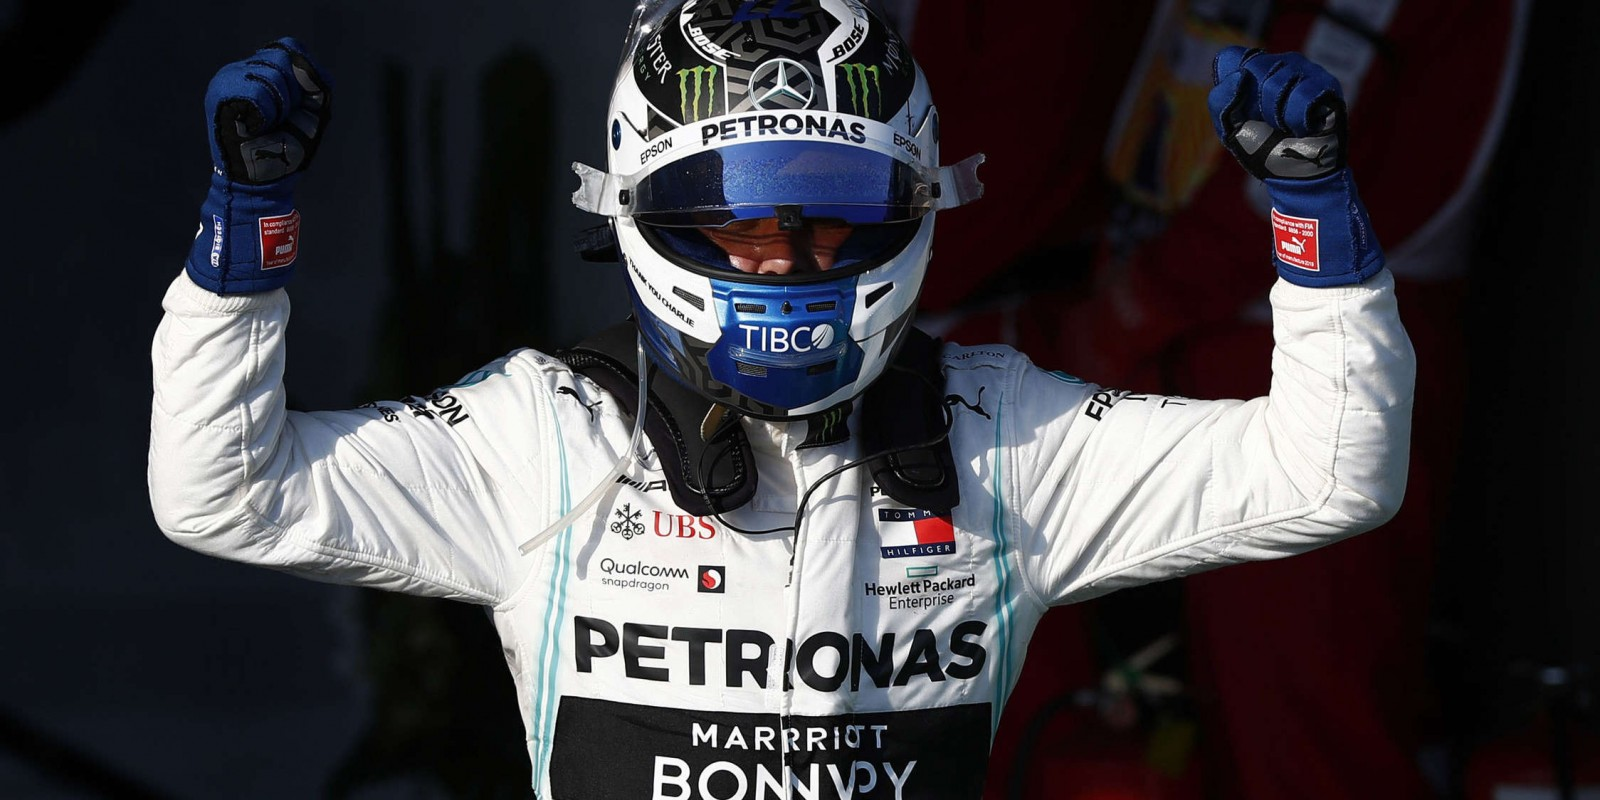 F1 2019 GOES HOT: FIRST BLOOD FOR BOTTAS